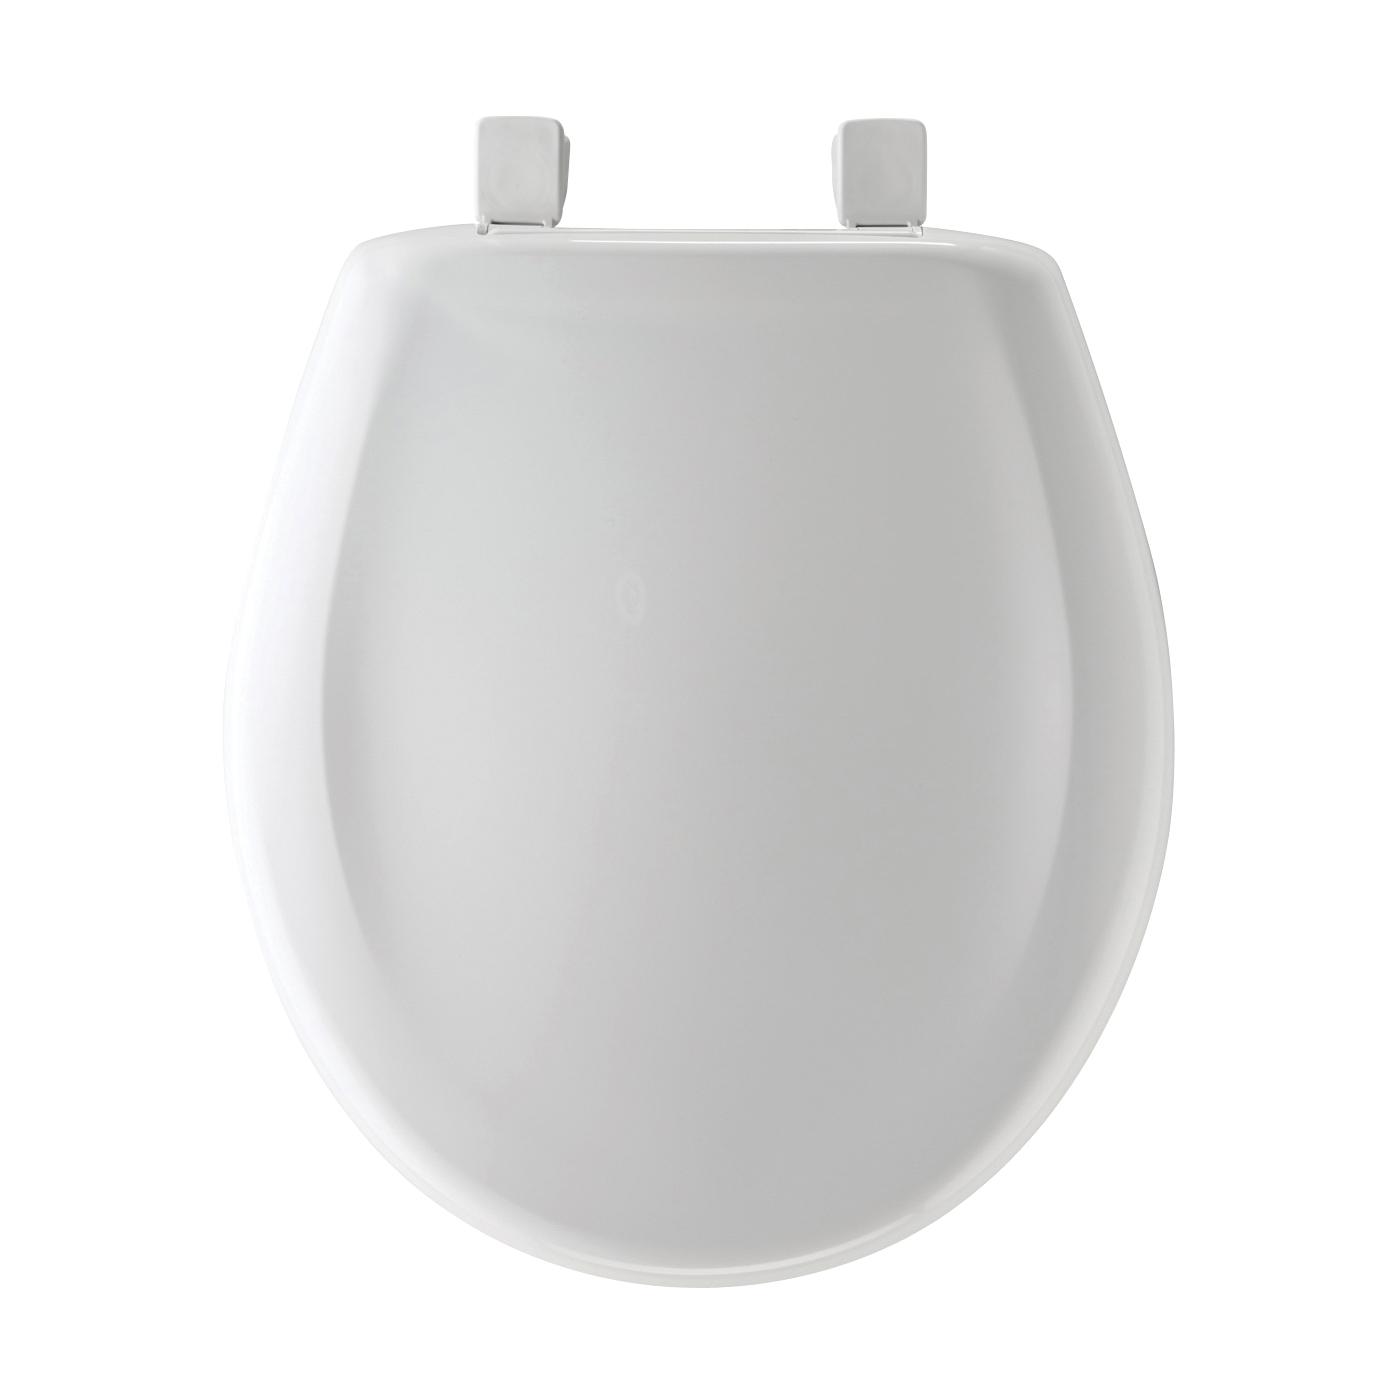 Picture of Mayfair 20SLOW-000 Toilet Seat, Round, Plastic, White, Easy-2, Lift-off Hinge